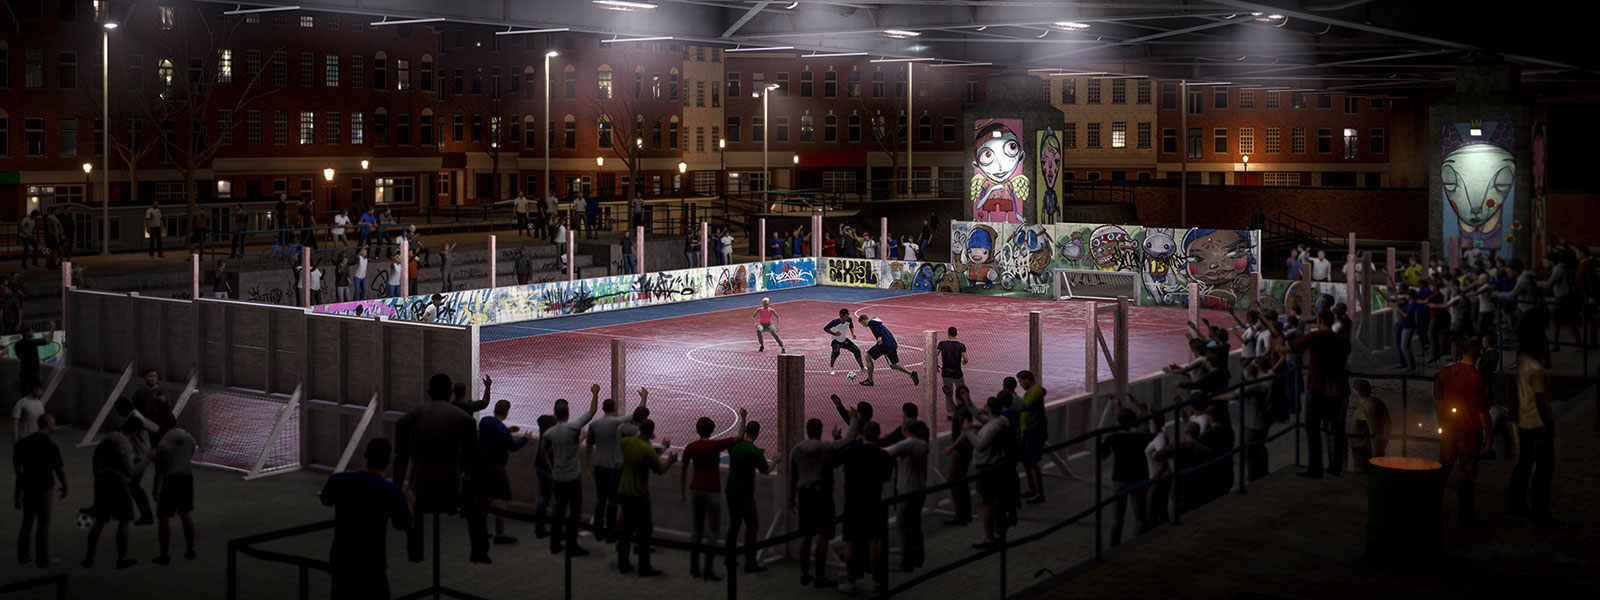 Characters playing street football in a cage while many people watch